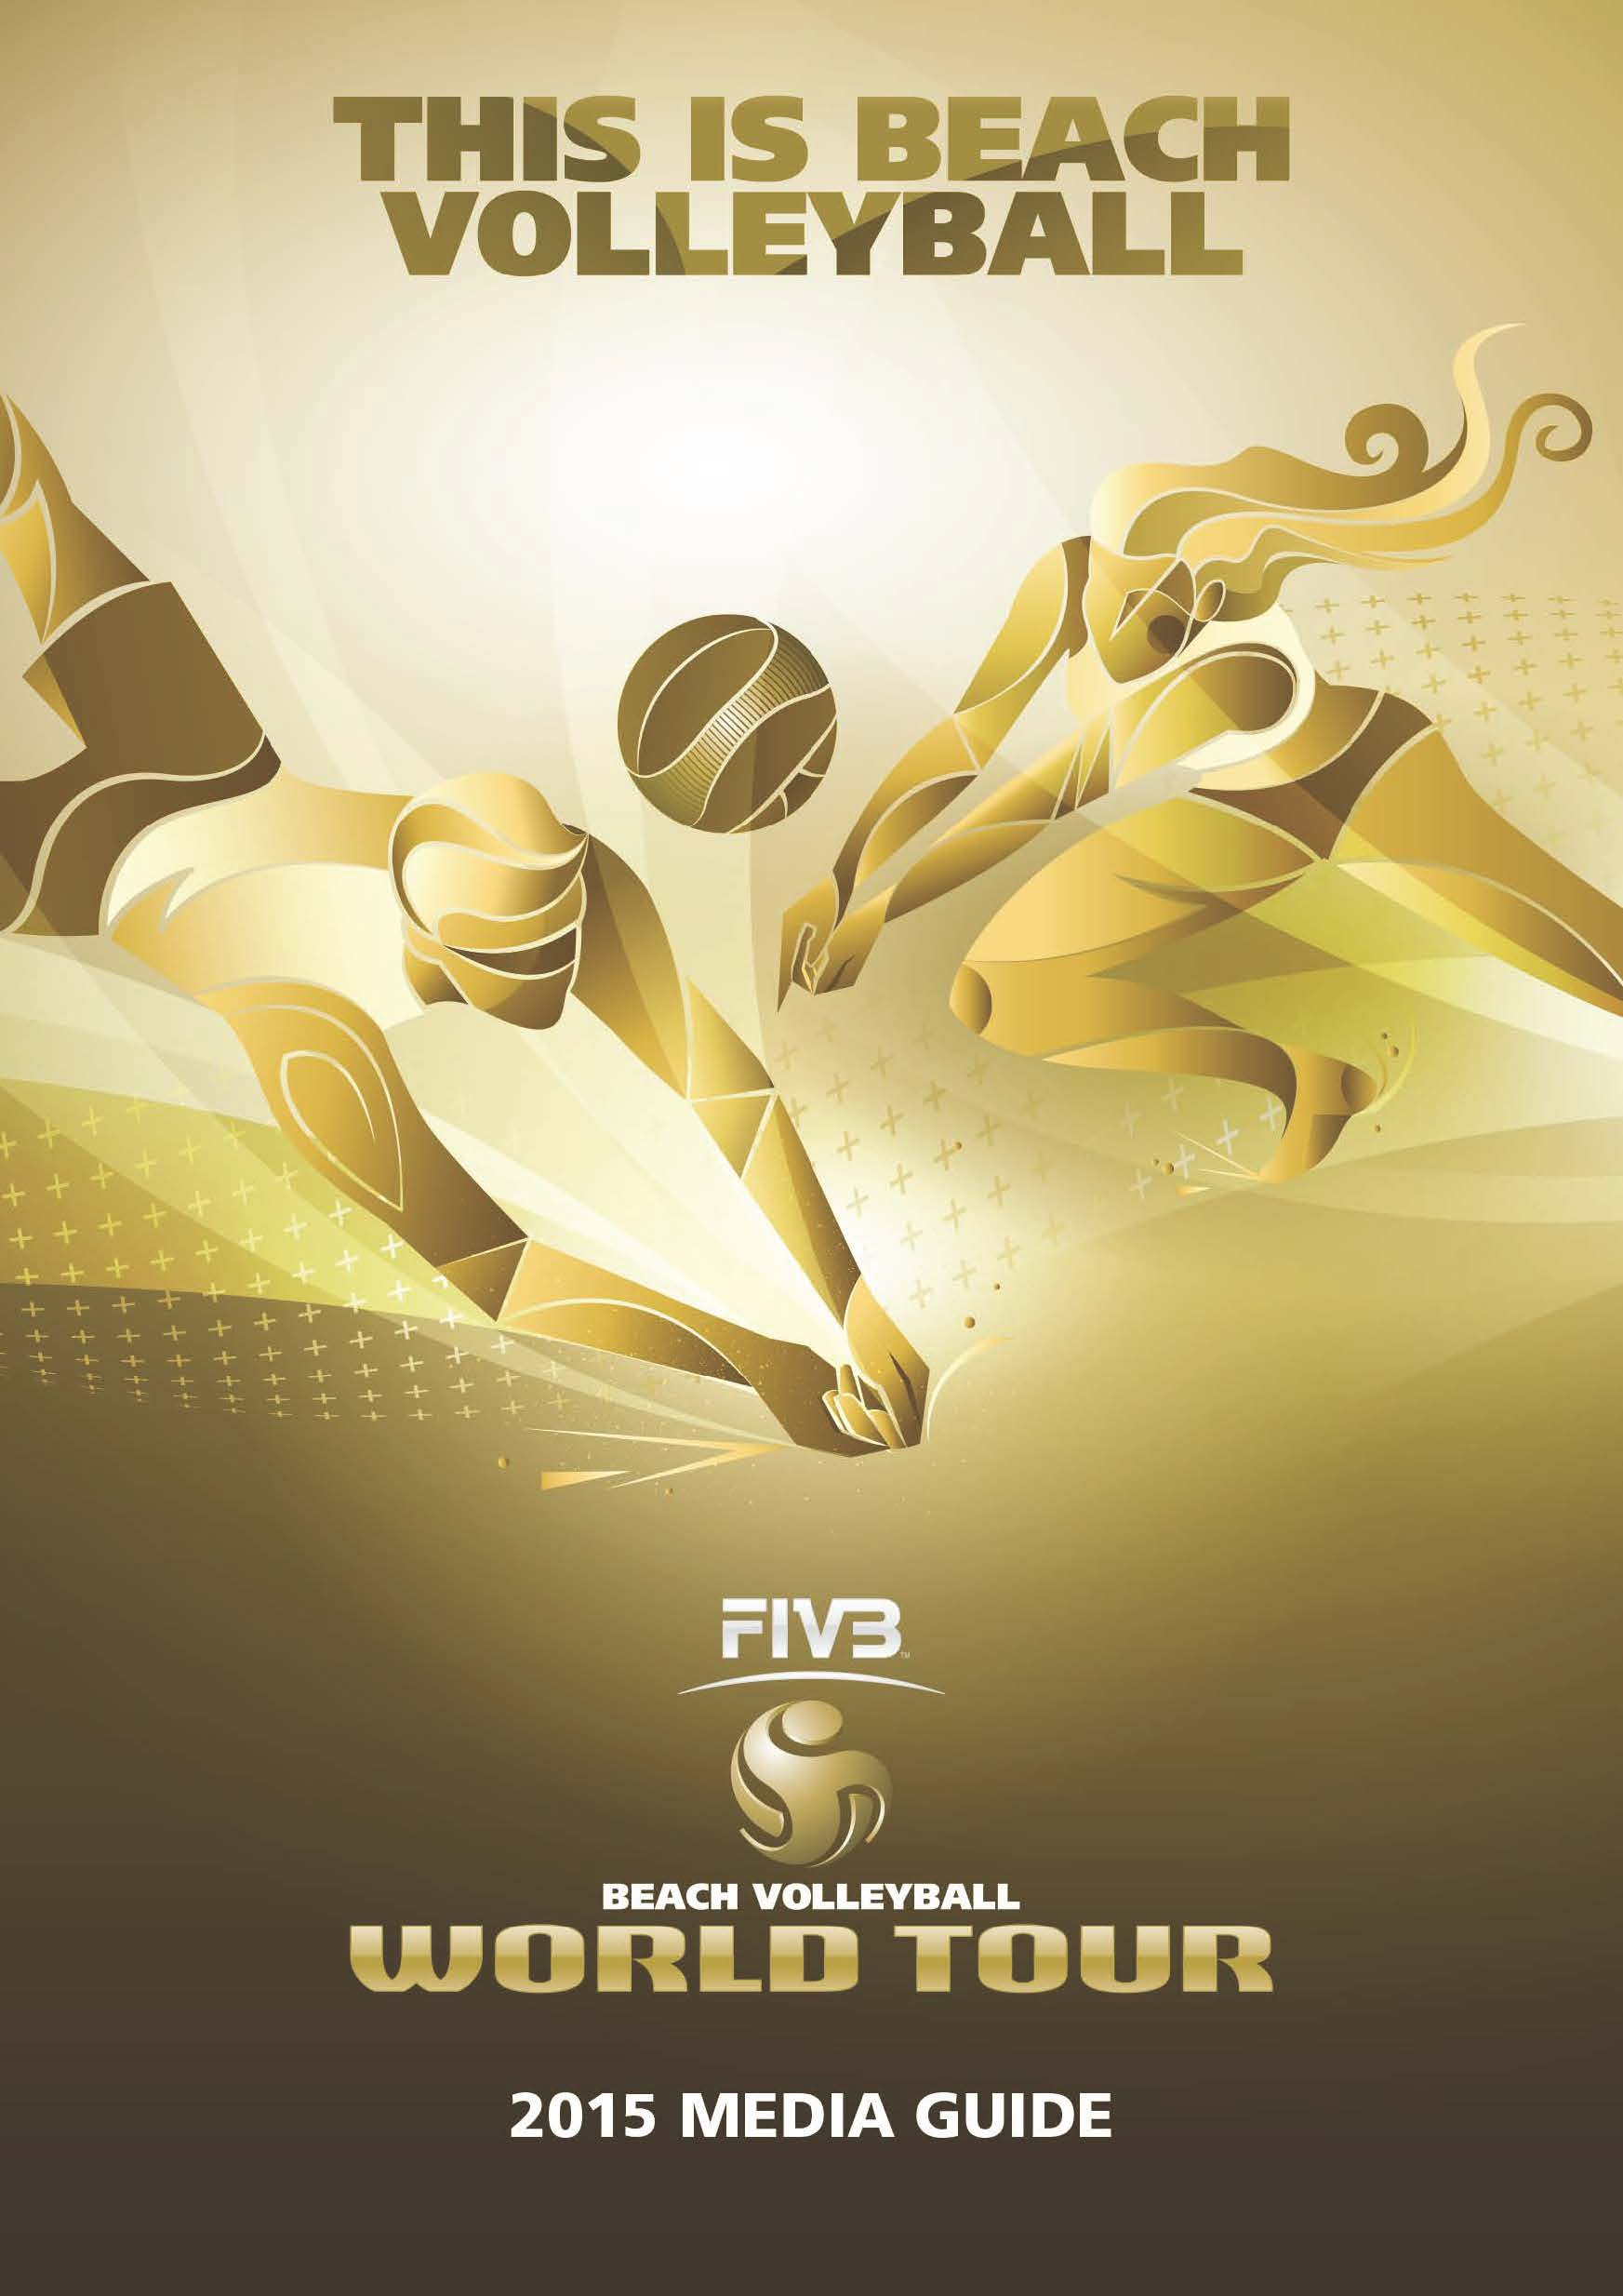 FIVB World Tour 2015 Media Guide